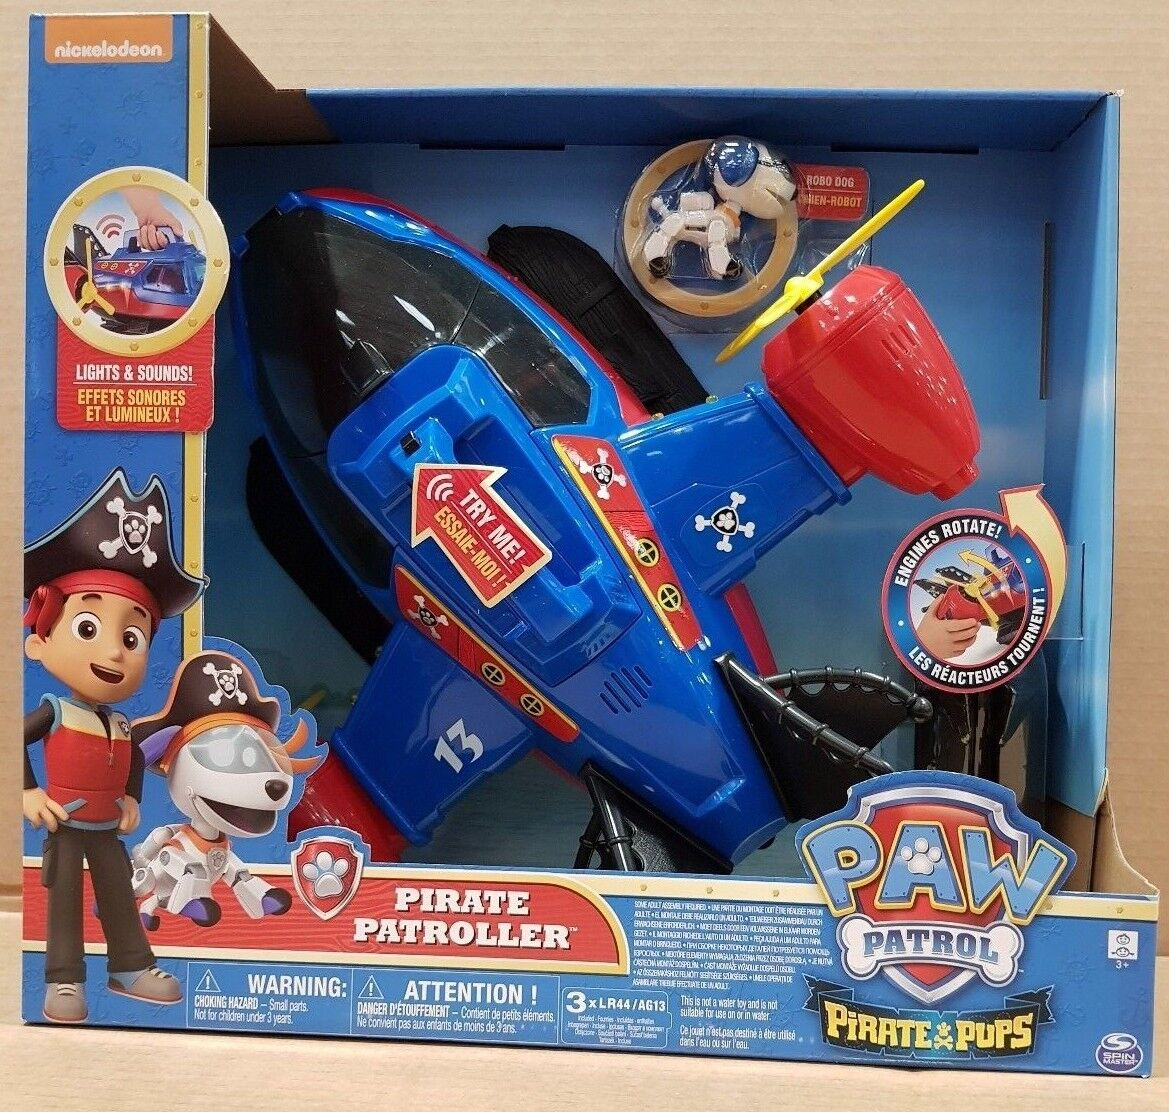 Paw Patrol Pirate Pups Pirate Patroller, Helicopter Plane Kids Boys Toy Playset